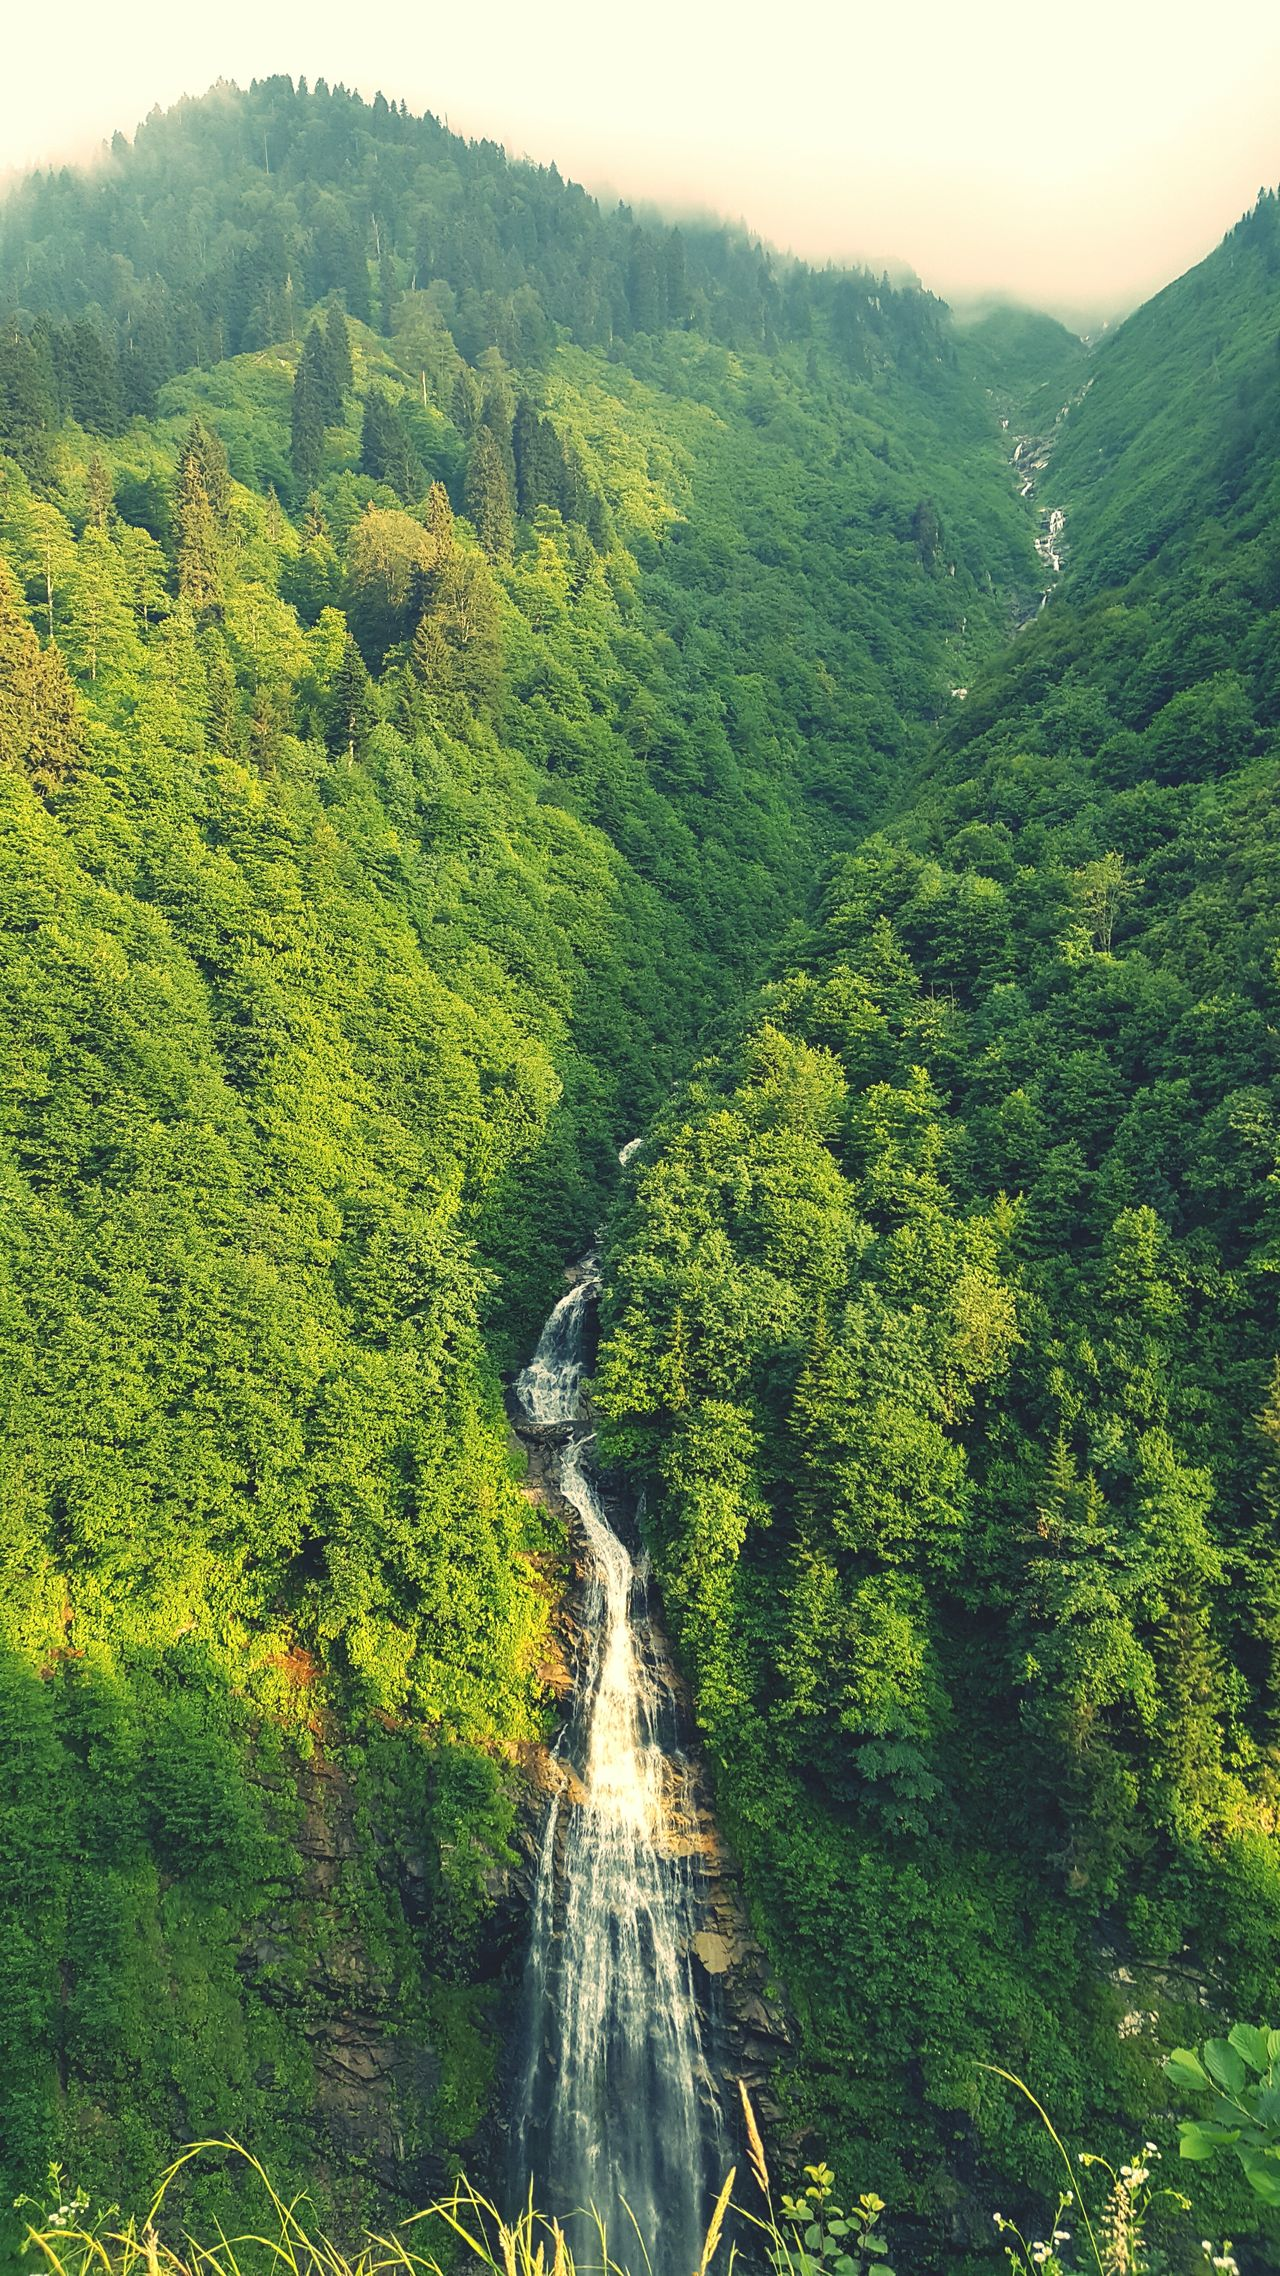 Rize/Turkey Gelintülüşelalesi EyeEm Best Shots EyeEm Best Shots - Nature Hidden Gems  My Best Photo 2015